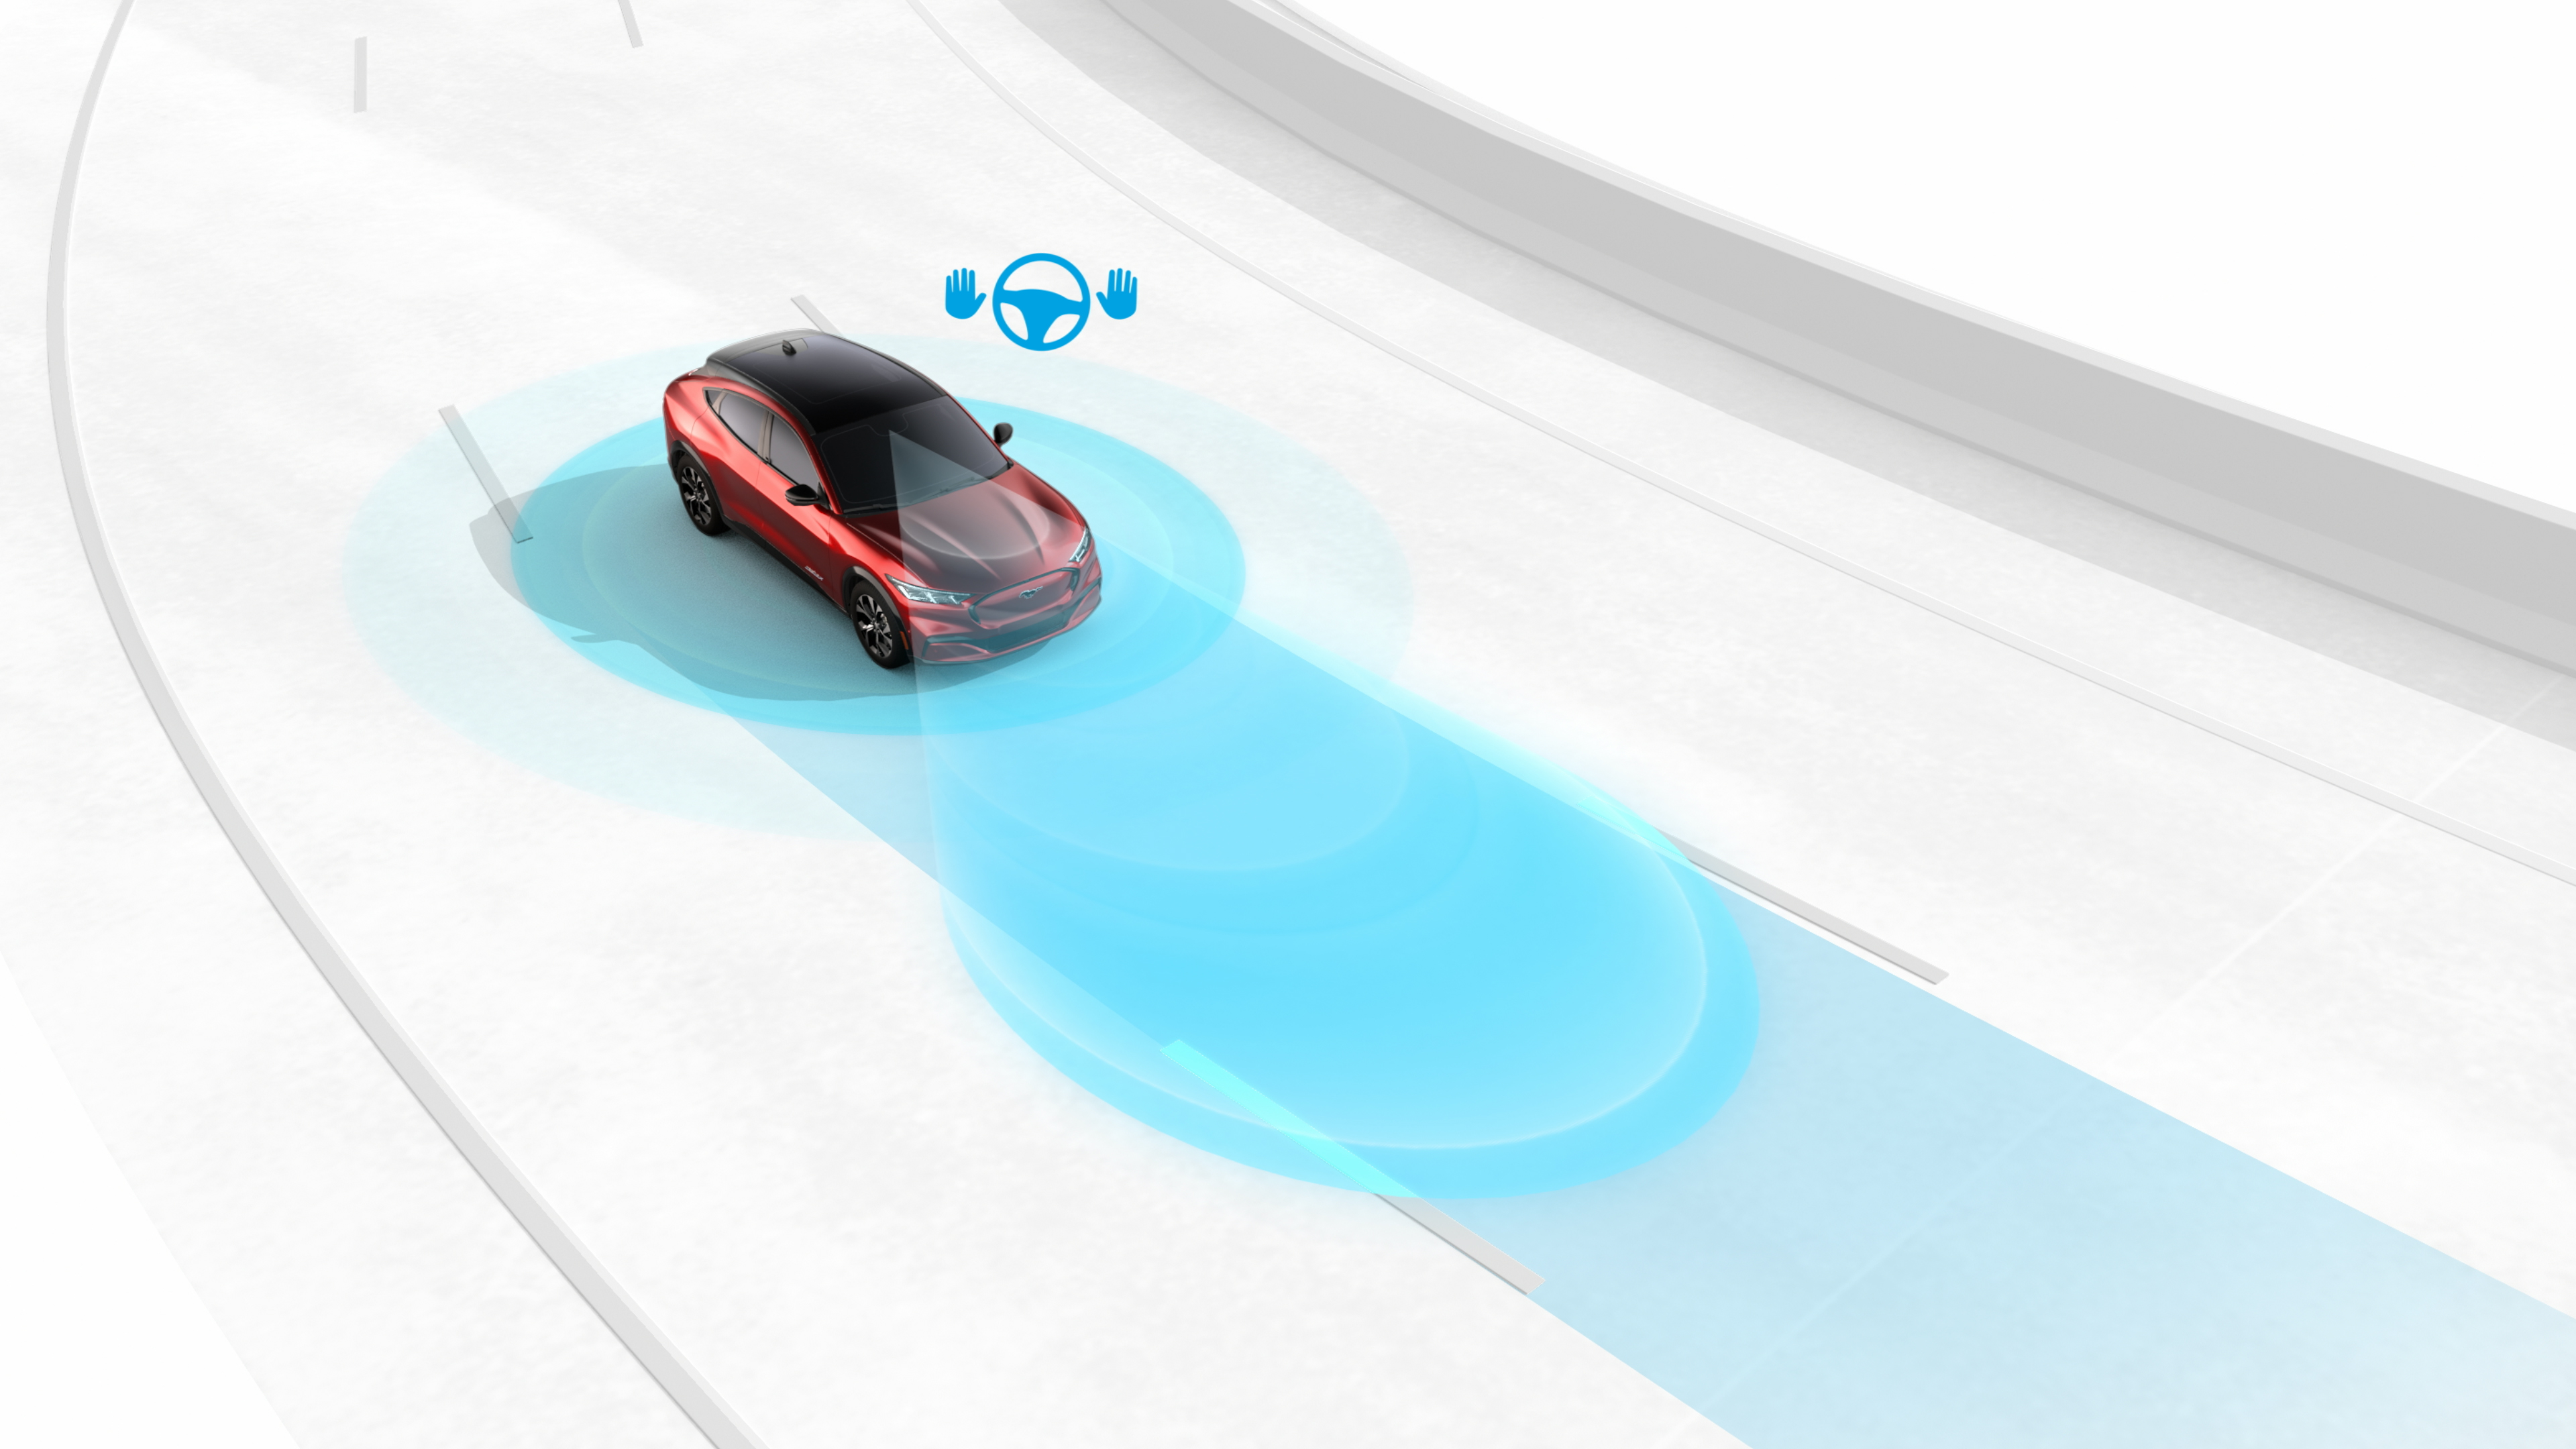 Ford will begin offering its new BlueCruise hands-free highway driving system to customers later this year after 500,000 miles of development testing and fine-tuning the technology on a journey across the United States and Canada.